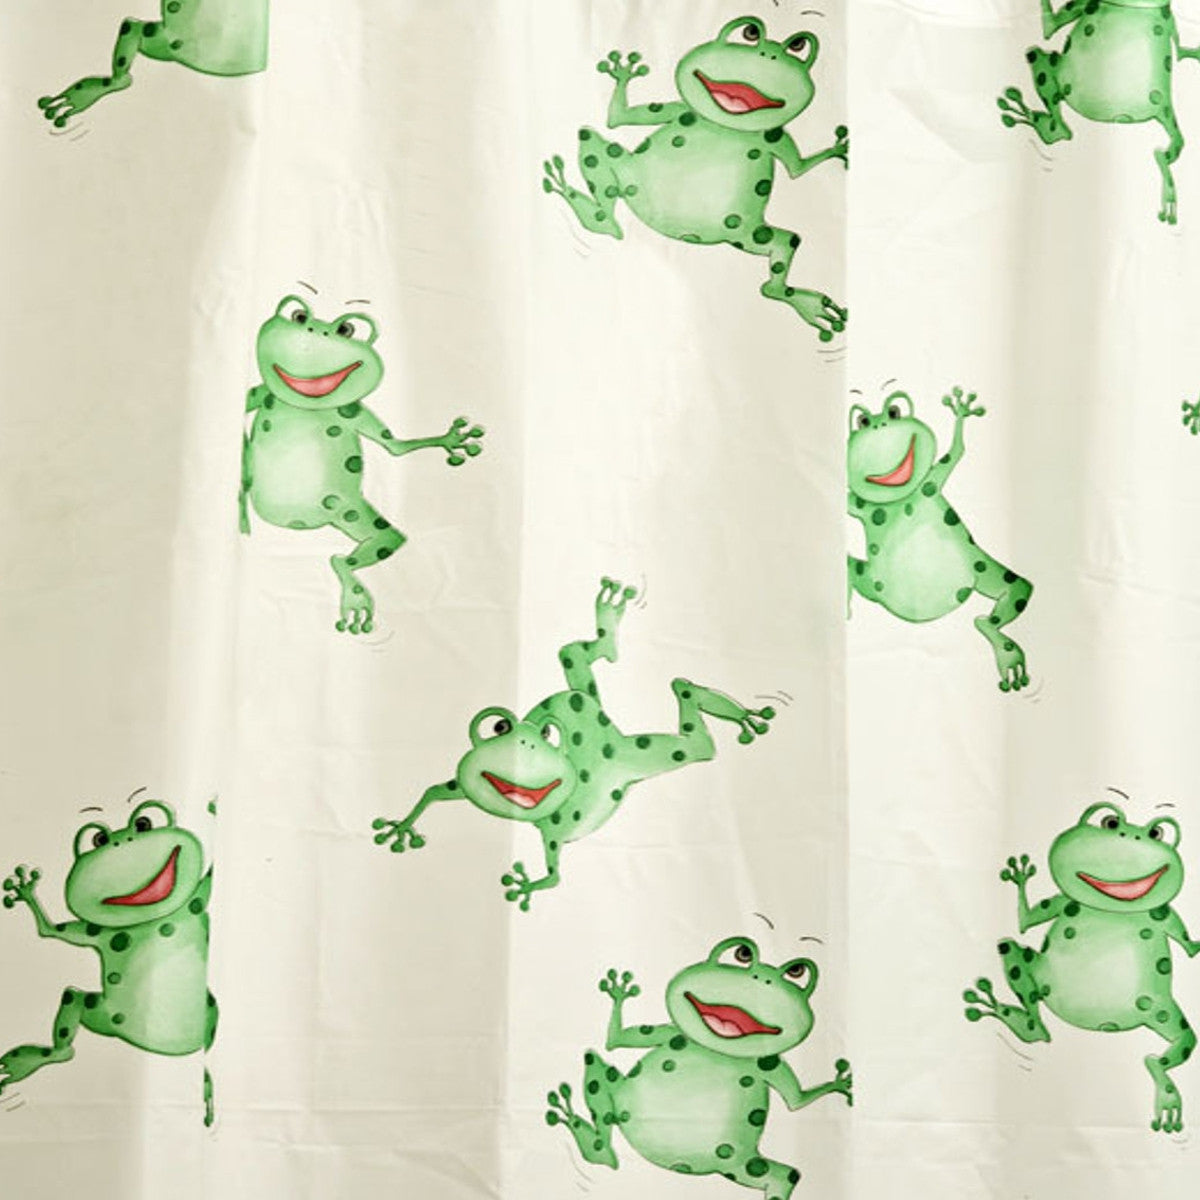 Jumping Frog Peva Standard Shower Curtain Baines Manchester